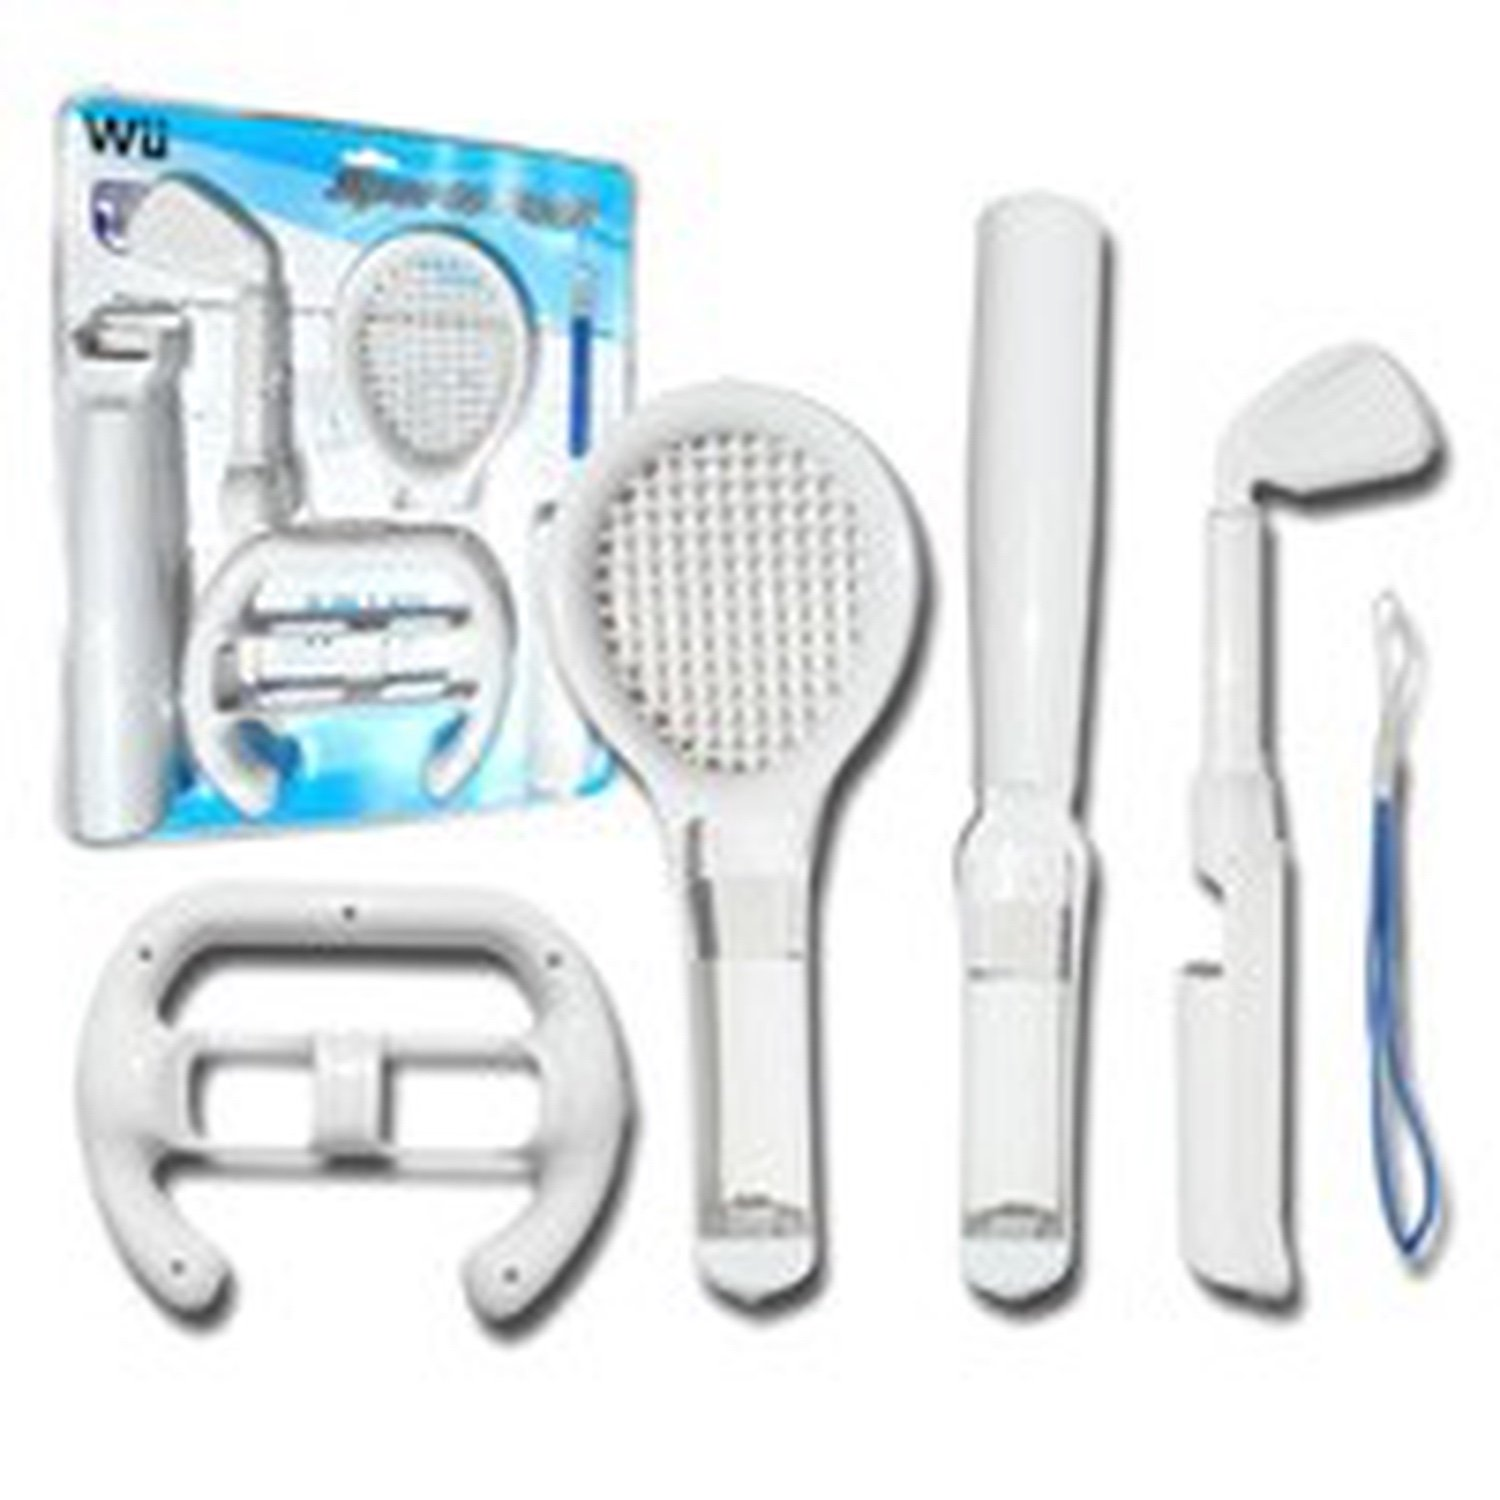 цена на Wii 5 in 1 Sports Pack